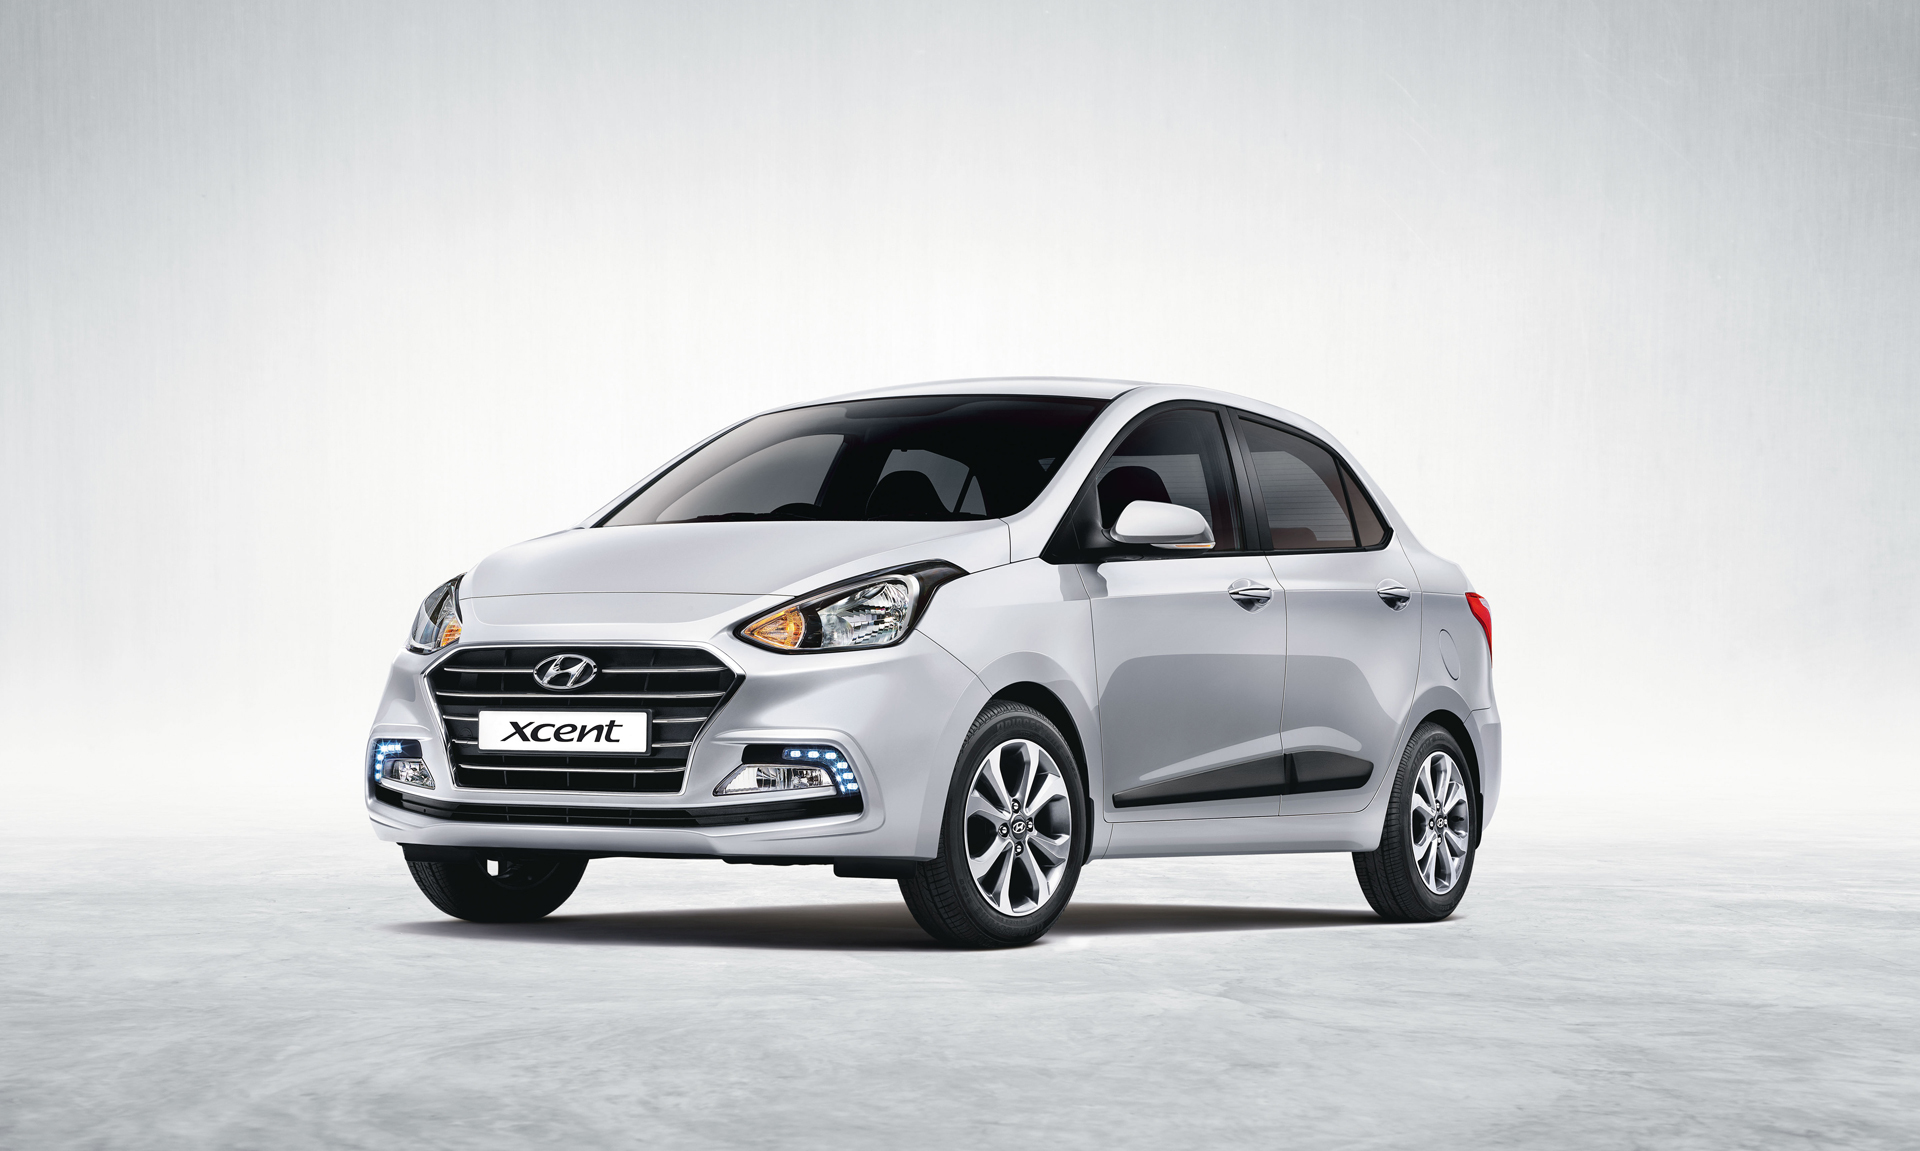 Hyundai Xcent Specifications, Price, Mileage, Pics, Review